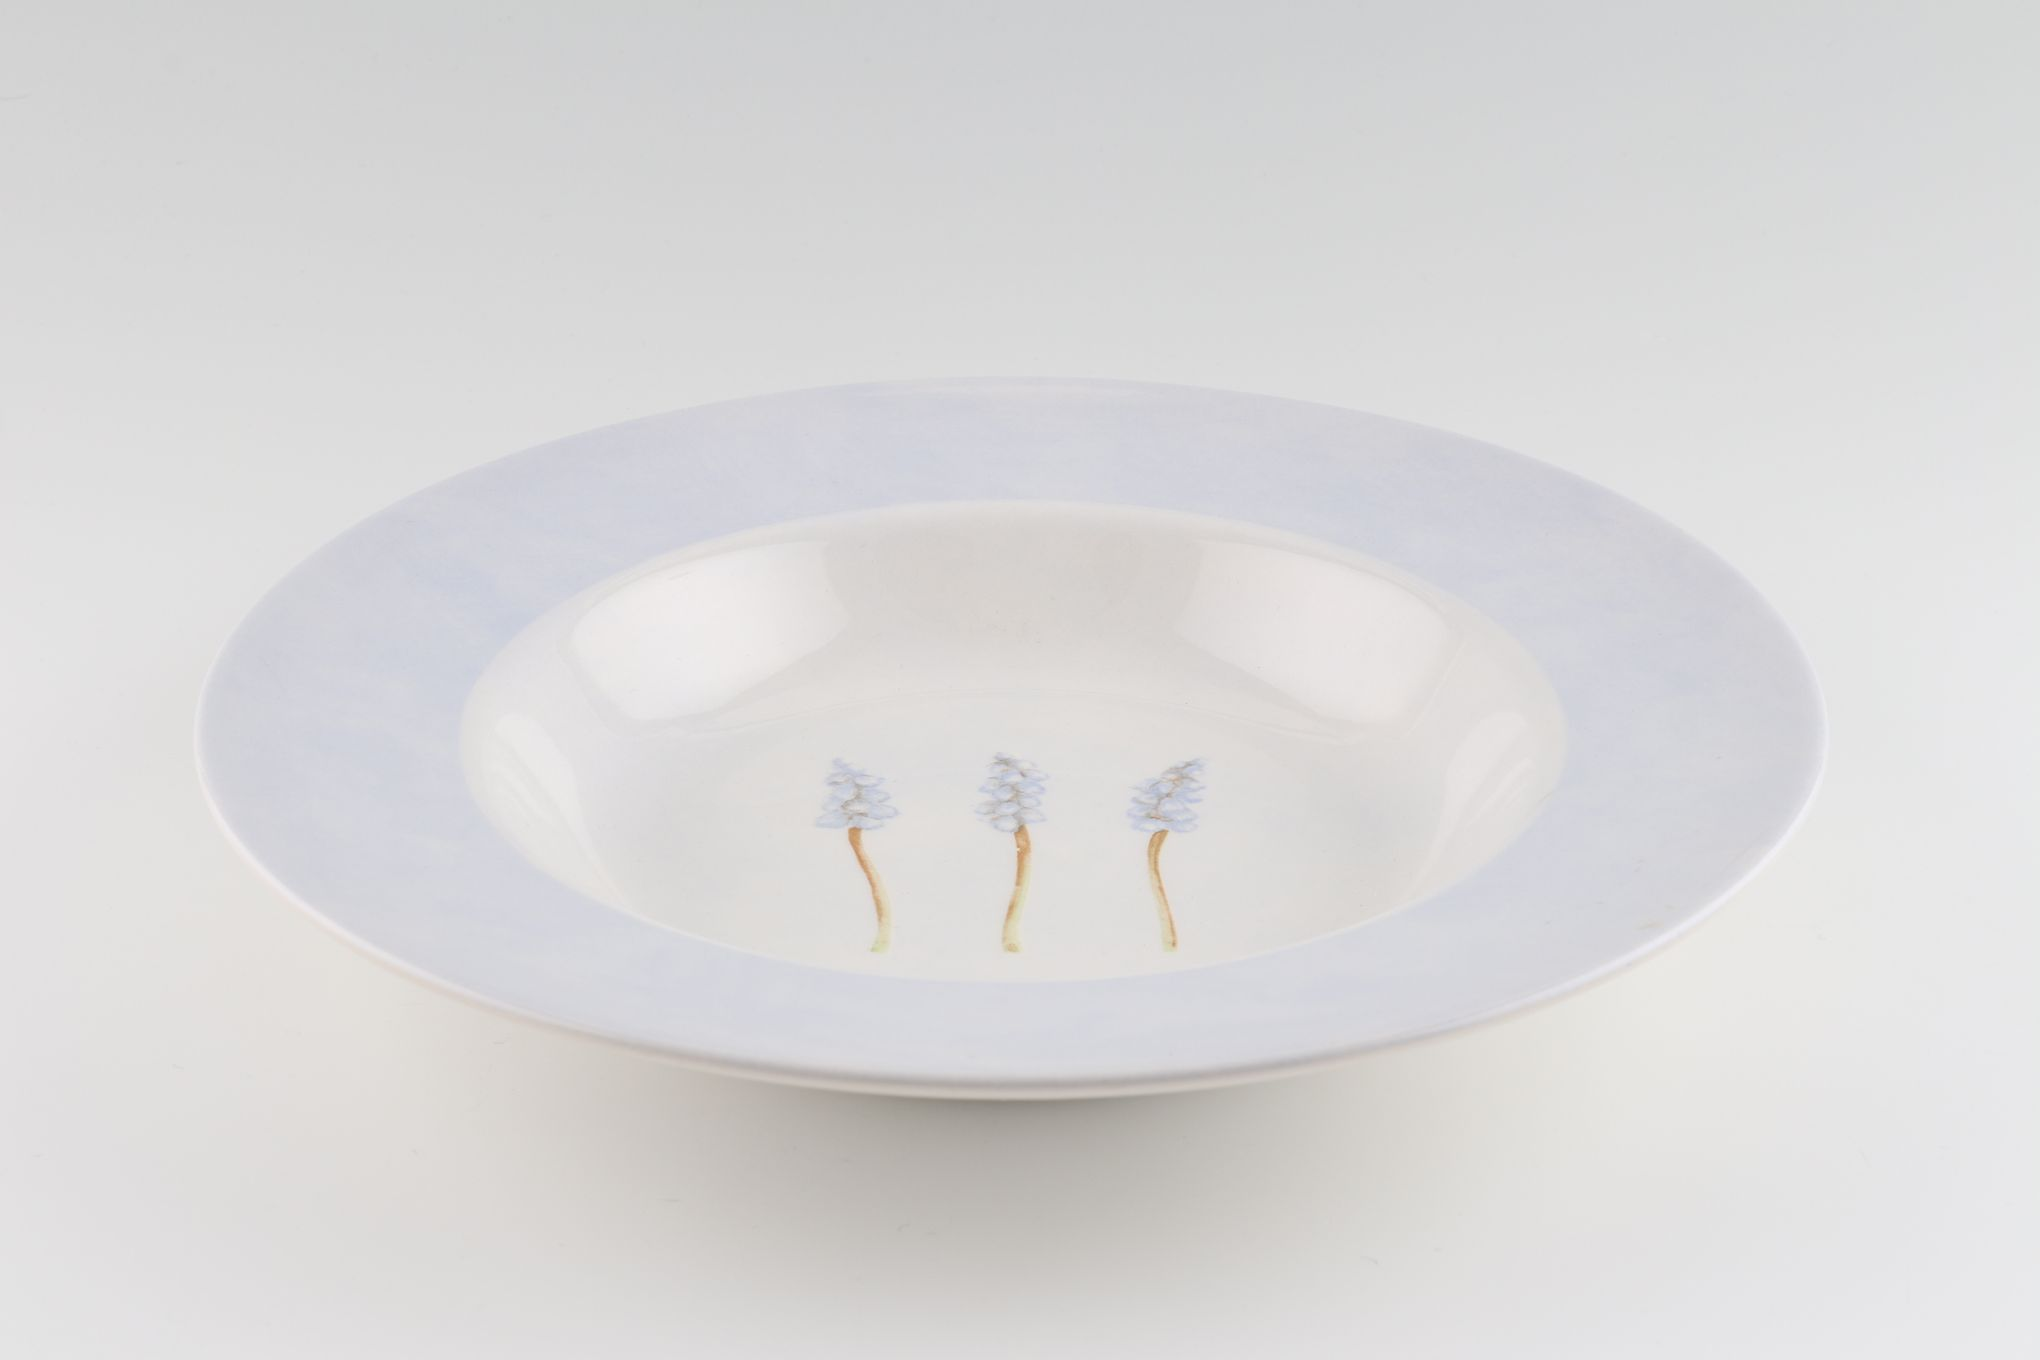 """BHS Simplicity Rimmed Bowl 9 3/4"""" thumb 2"""